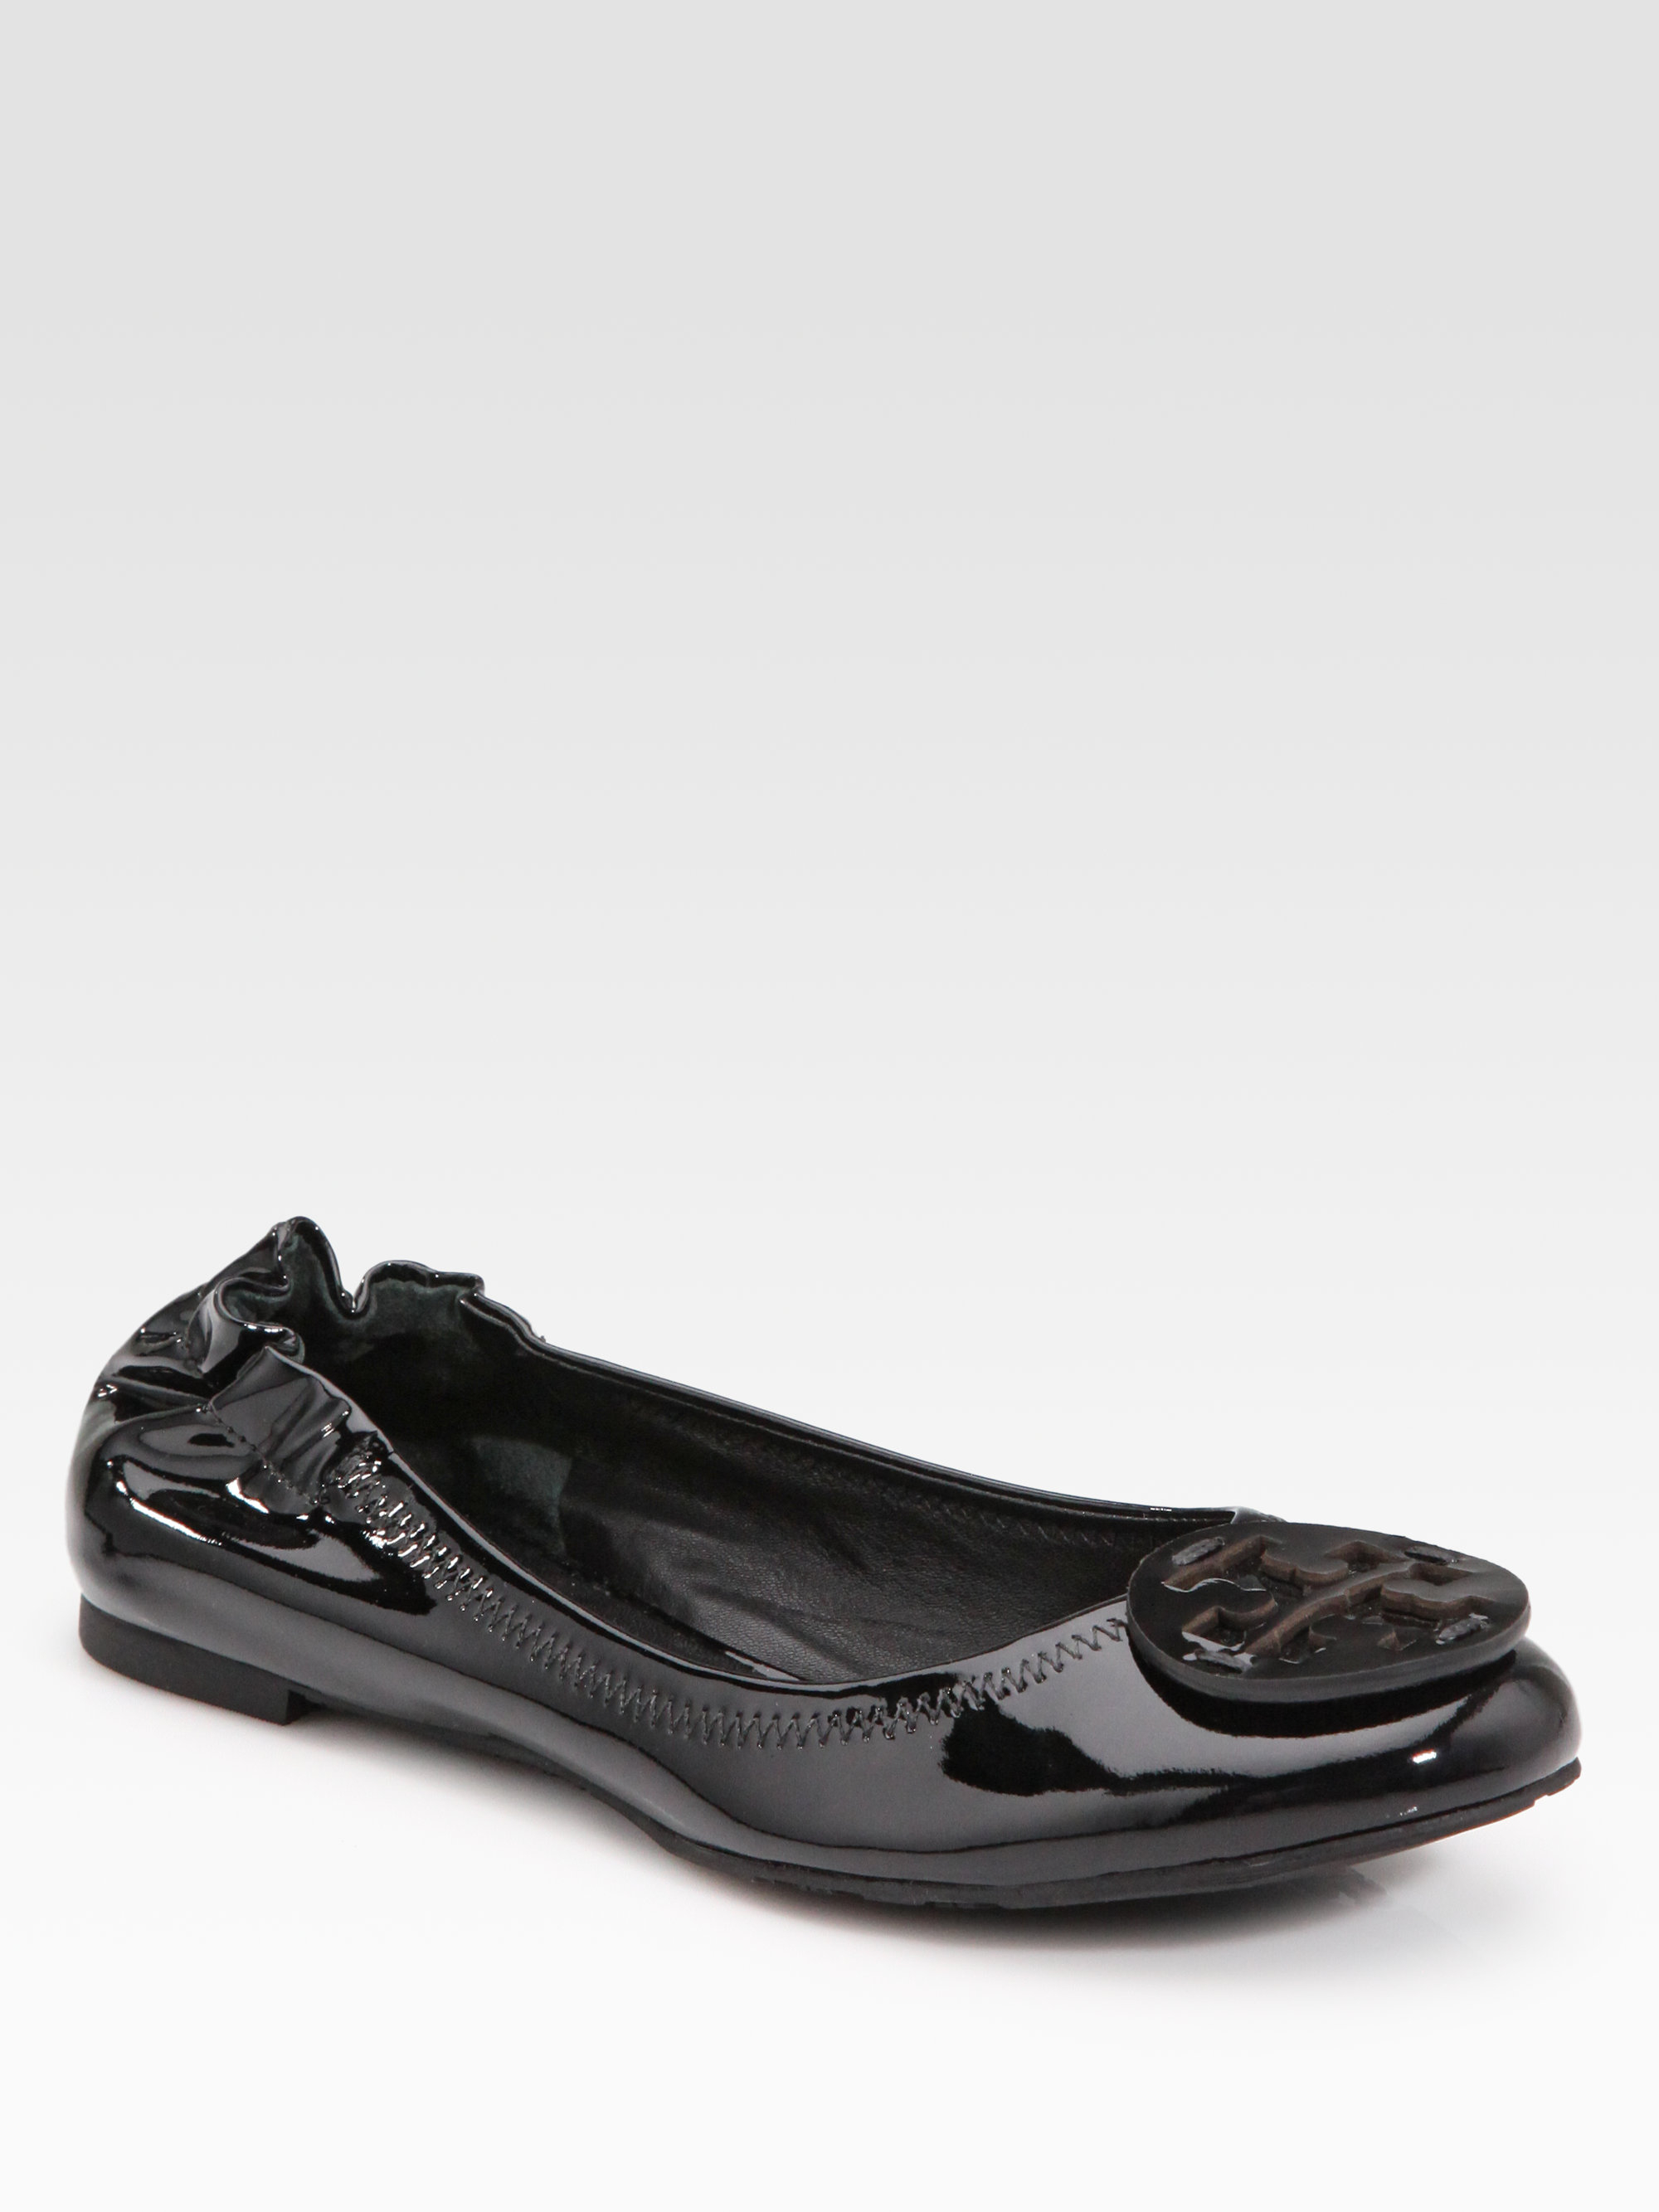 834a6d6b1d3 Lyst - Tory Burch Reva Patent Leather Ballet Flats in Black